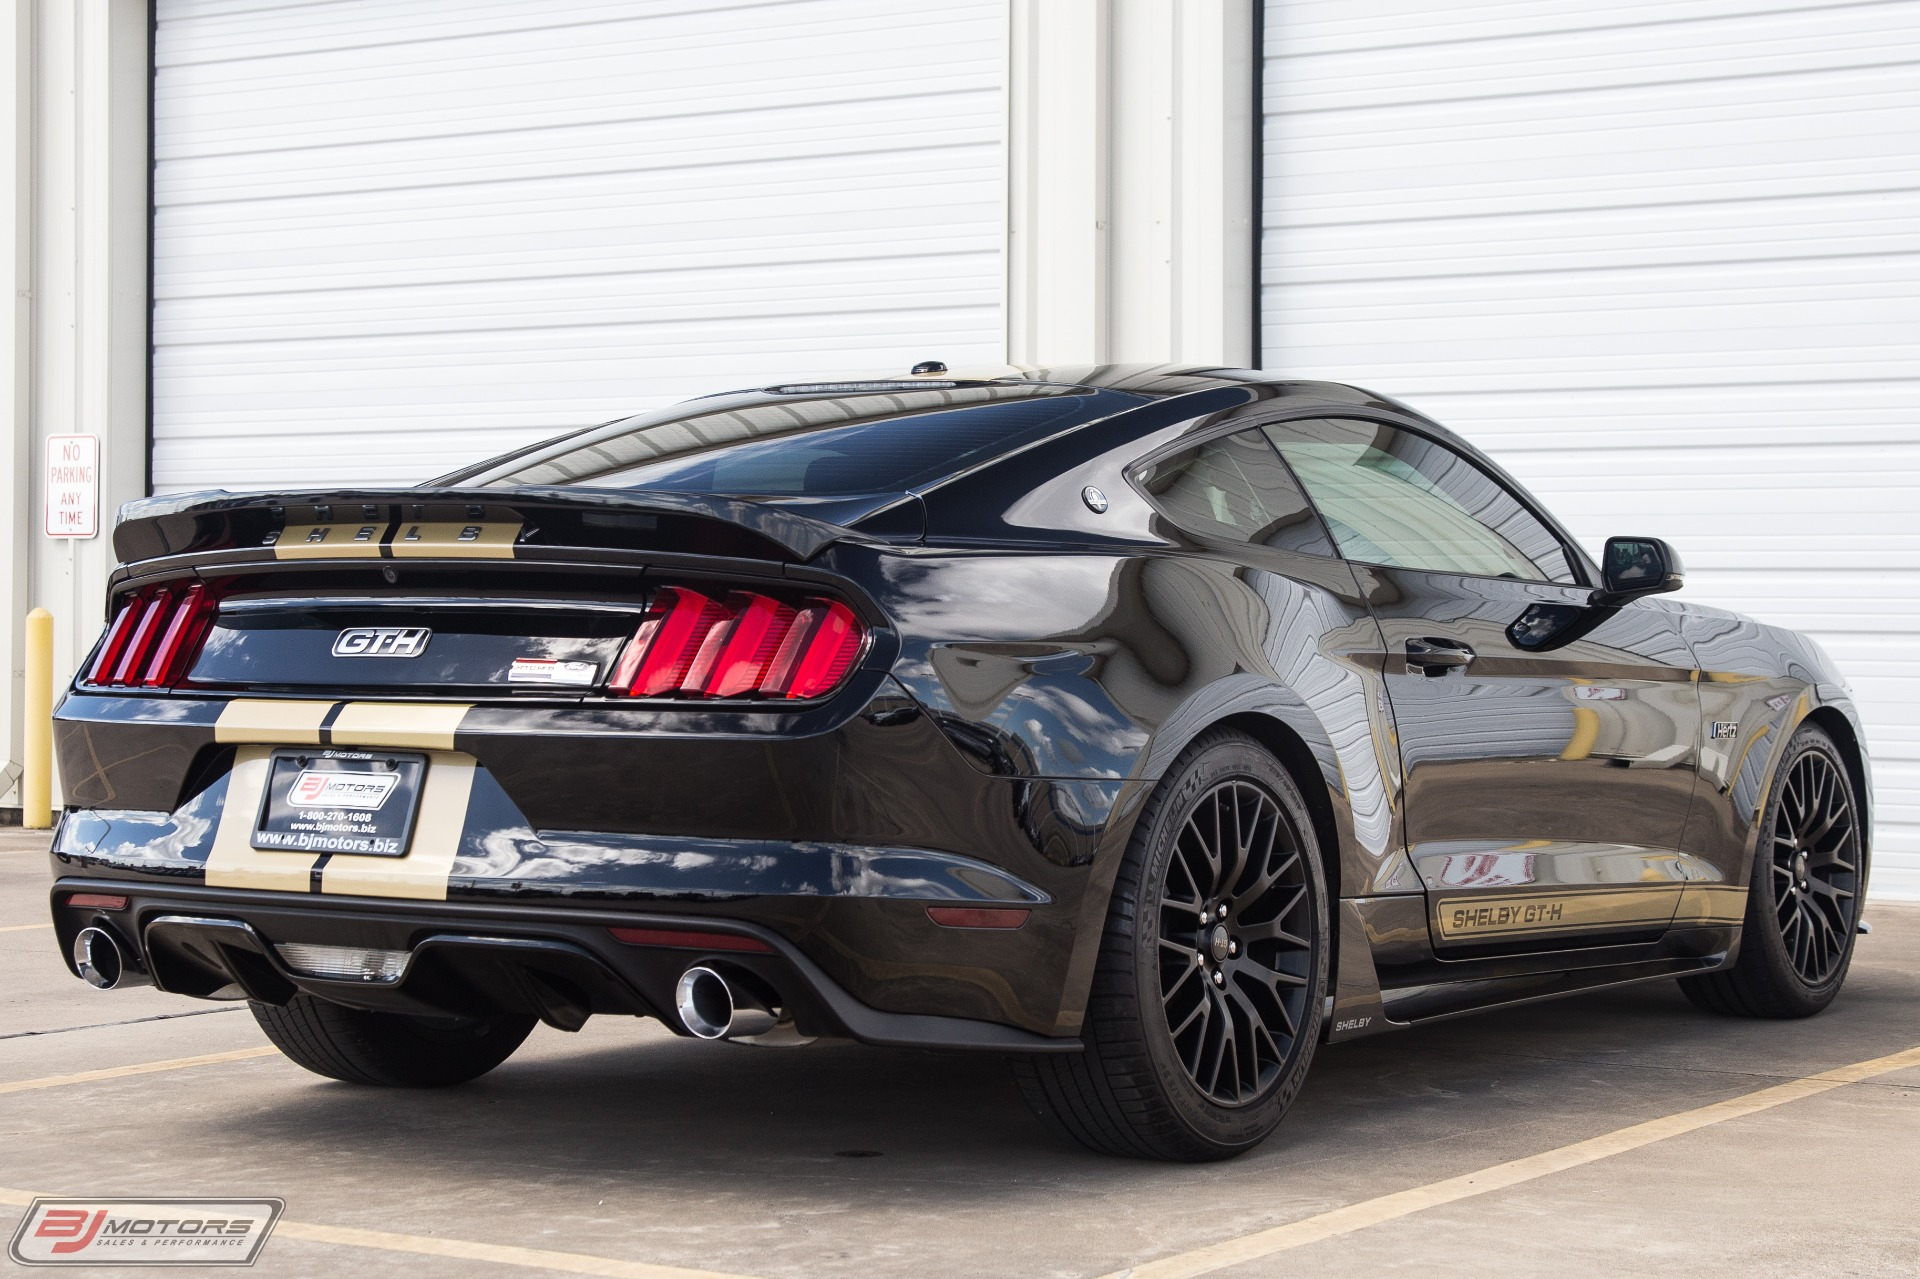 Mustang Gt H >> Used 2016 Ford Mustang Hertz GT-H Edition # 33 GT-H Premium For Sale ($54,995) | BJ Motors Stock ...